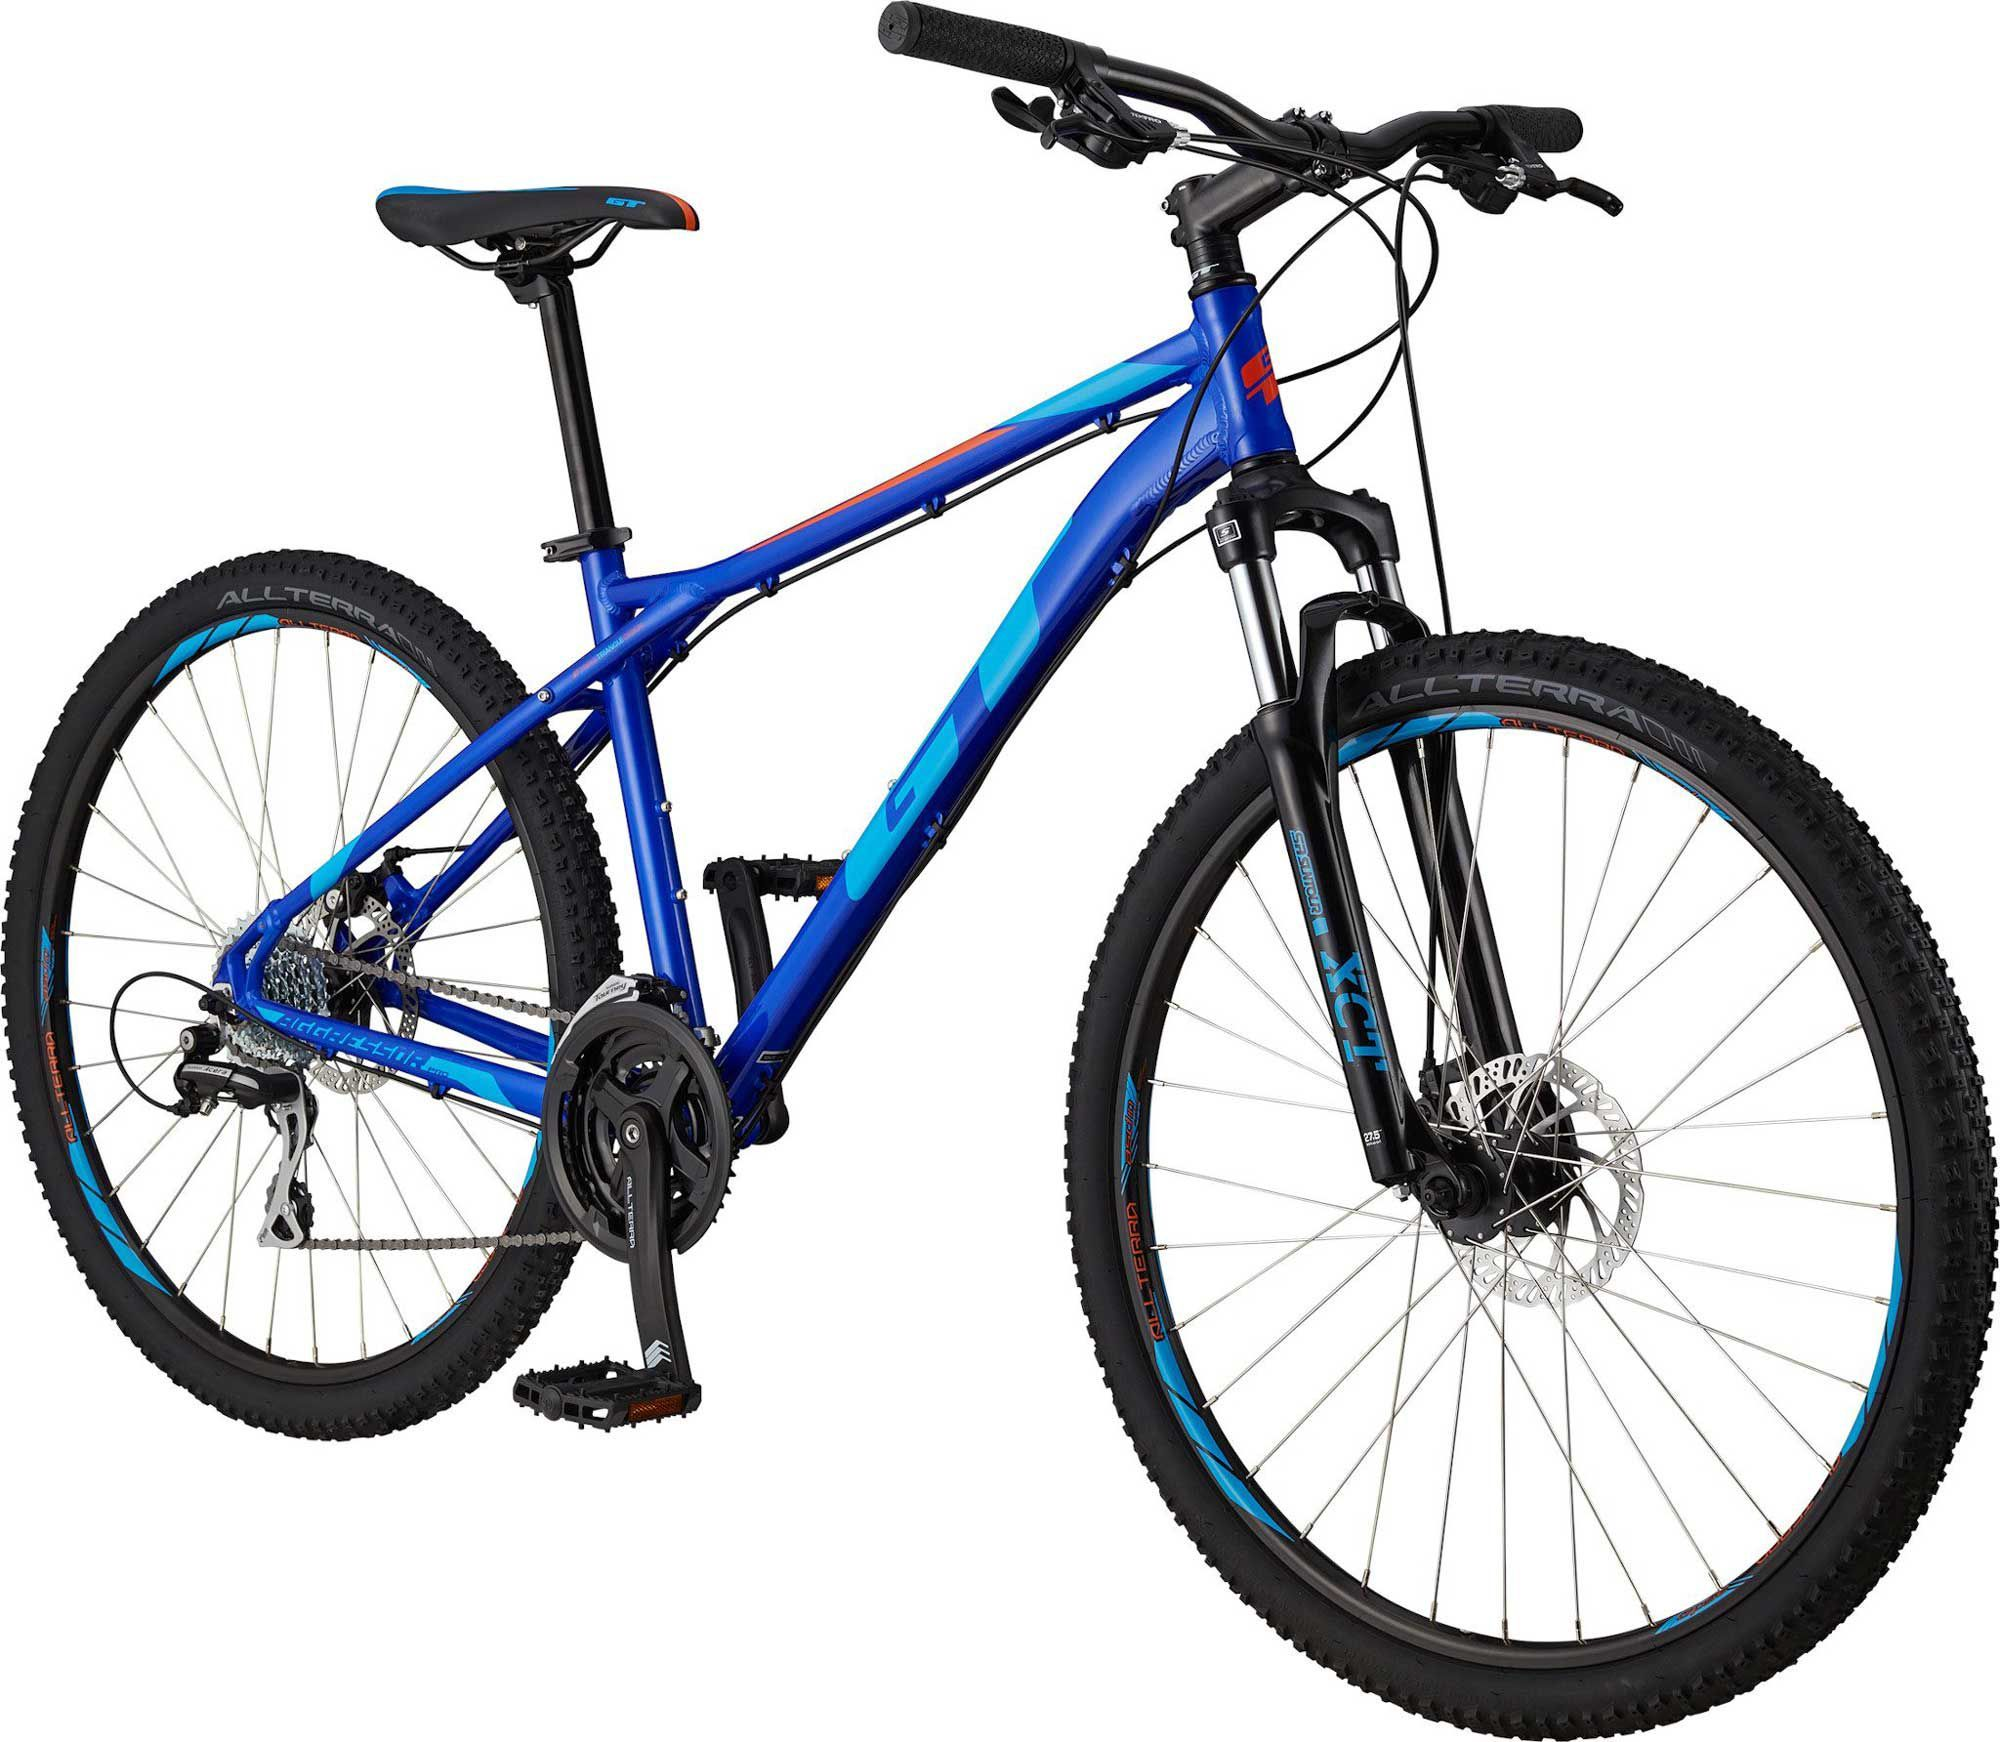 GT Aggressor Pro Mountain Bike in 2020 Mountain biking